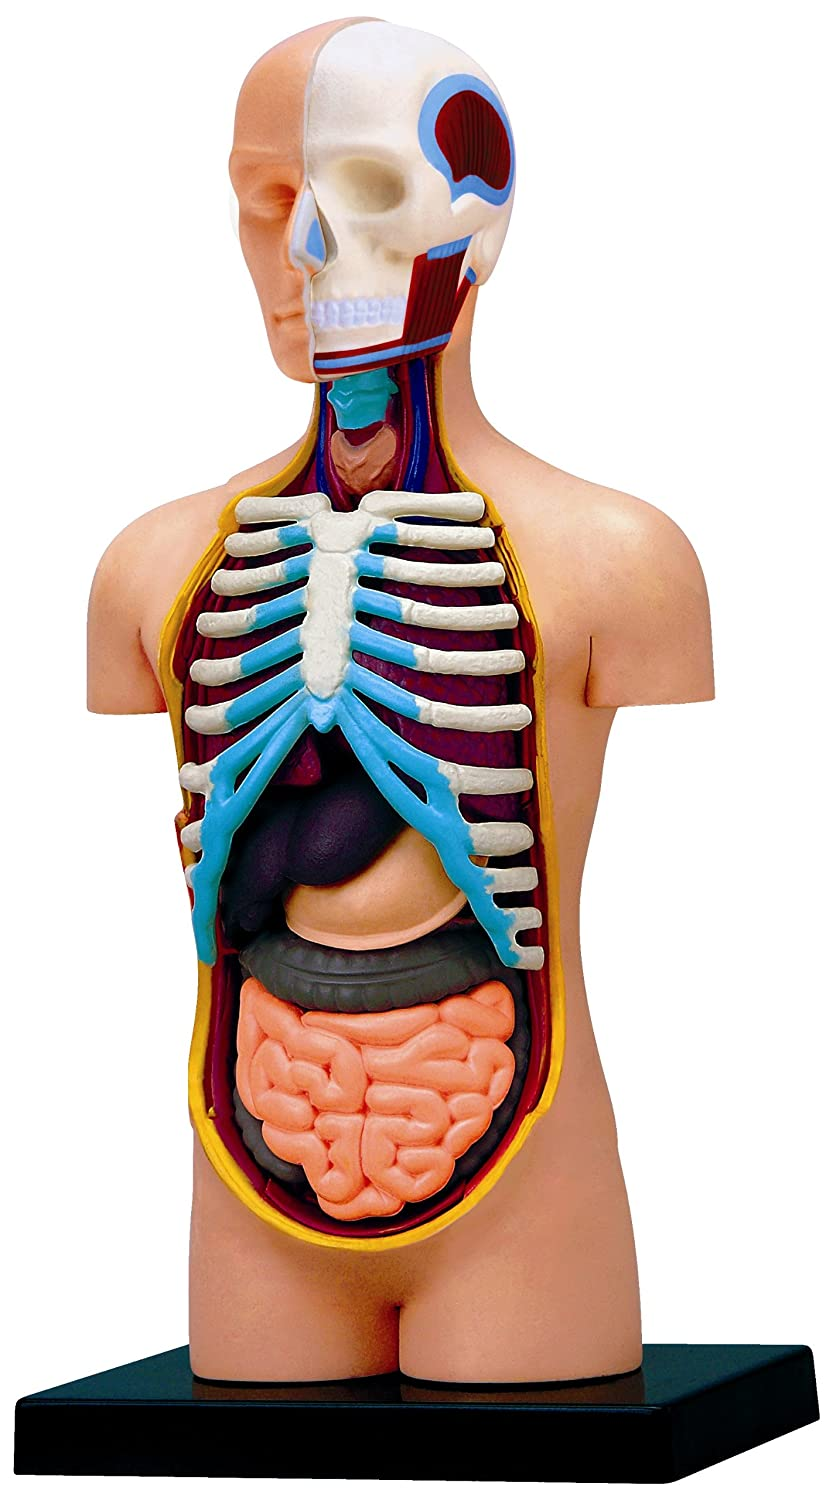 Amazon.com: 4D Vision Human Anatomy Torso Model: Toys & Games